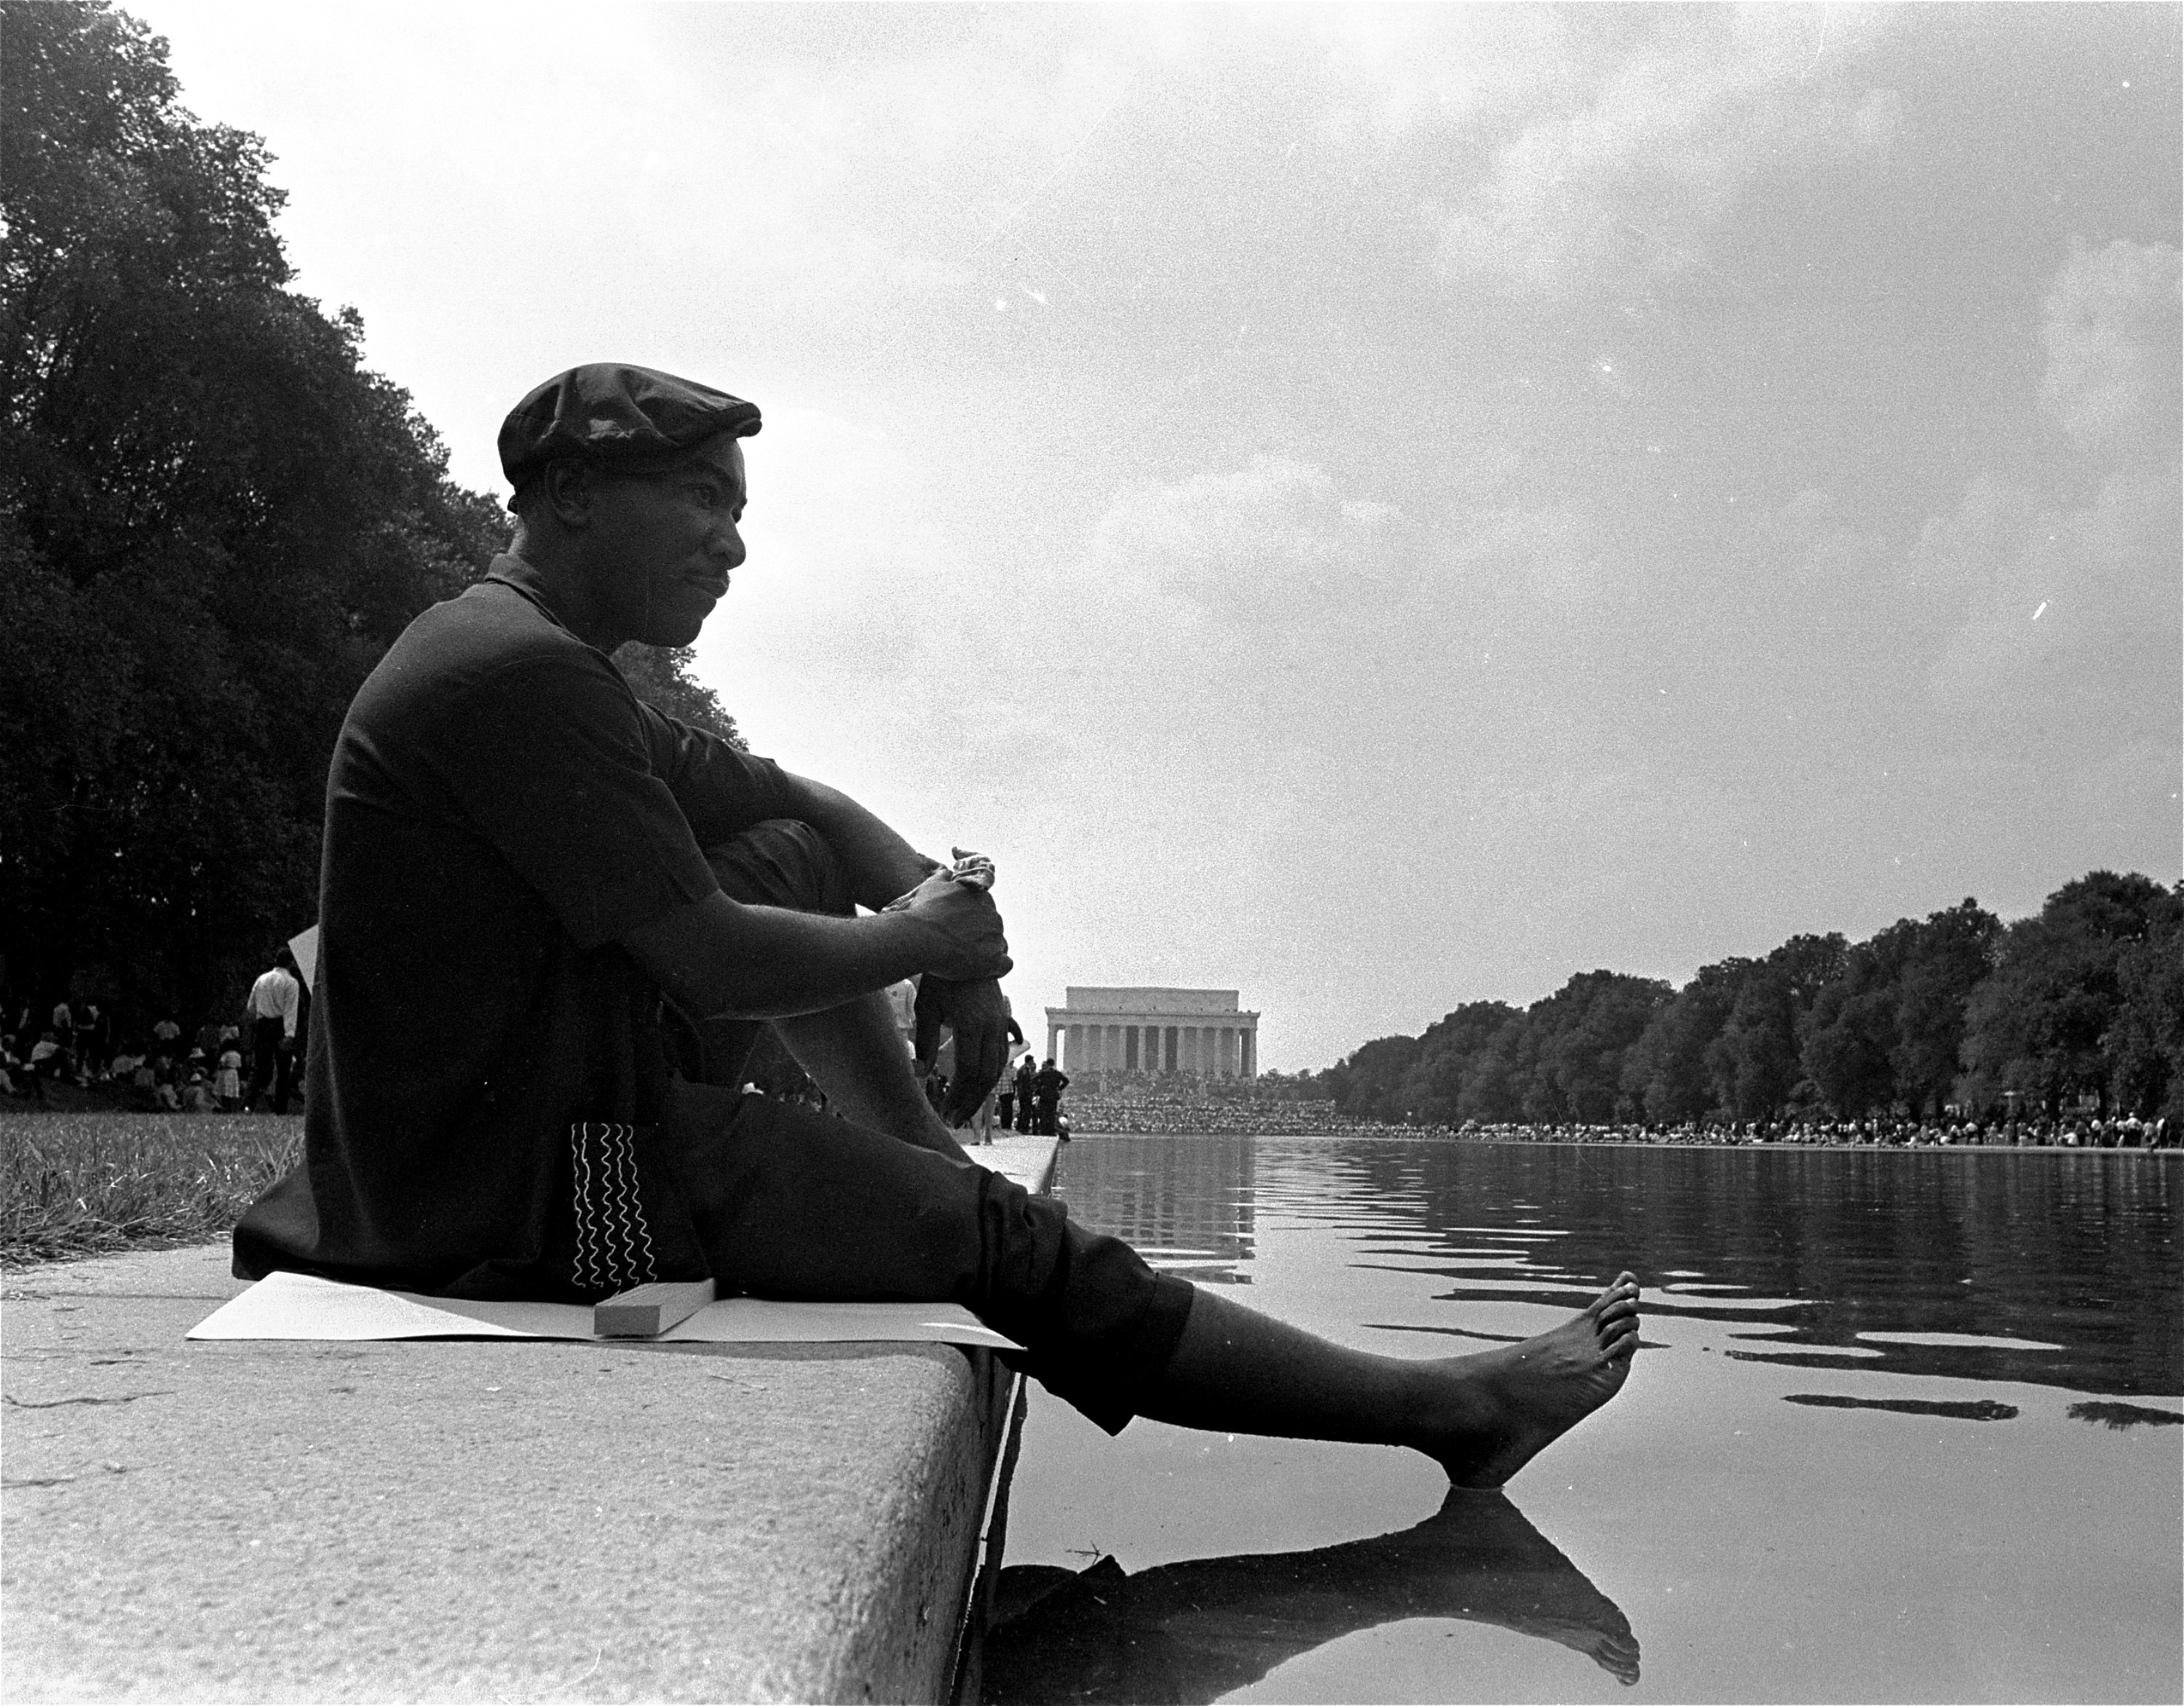 A civil rights marcher cools off his bare foot on the surface of the reflecting pool near the Lincoln Memorial following the March on Washington for Jobs and Freedom, August 28, 1963. (AP Photo)